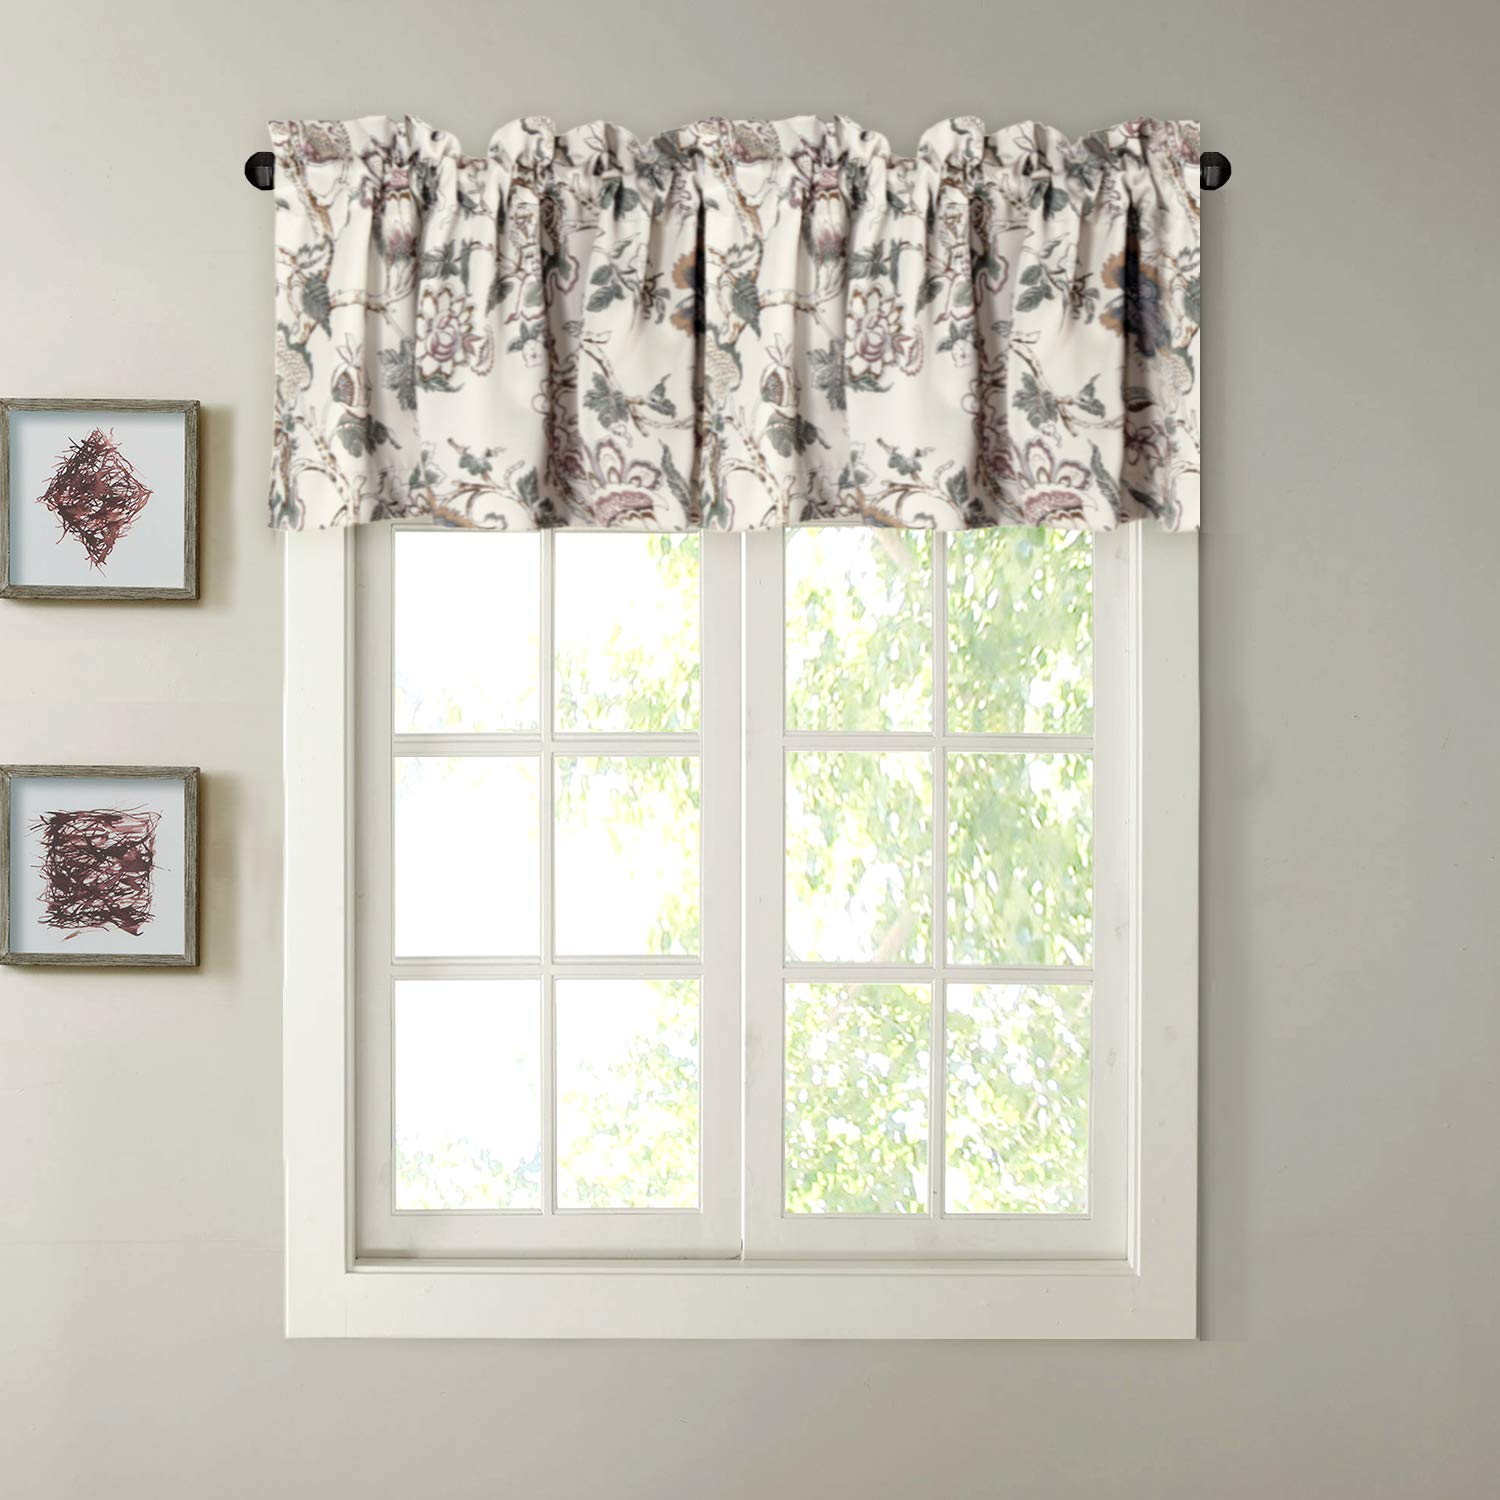 H.VERSAILTEX Window Valance Rustic Style Ultra Soft Material Suits Kitchen Bath Laundry Bedroom Living Room (Rod Pocket, 58 15 inch, Vintage Floral Pattern in Sage Brown, Set of 1) by H.VERSAILTEX (Image #1)